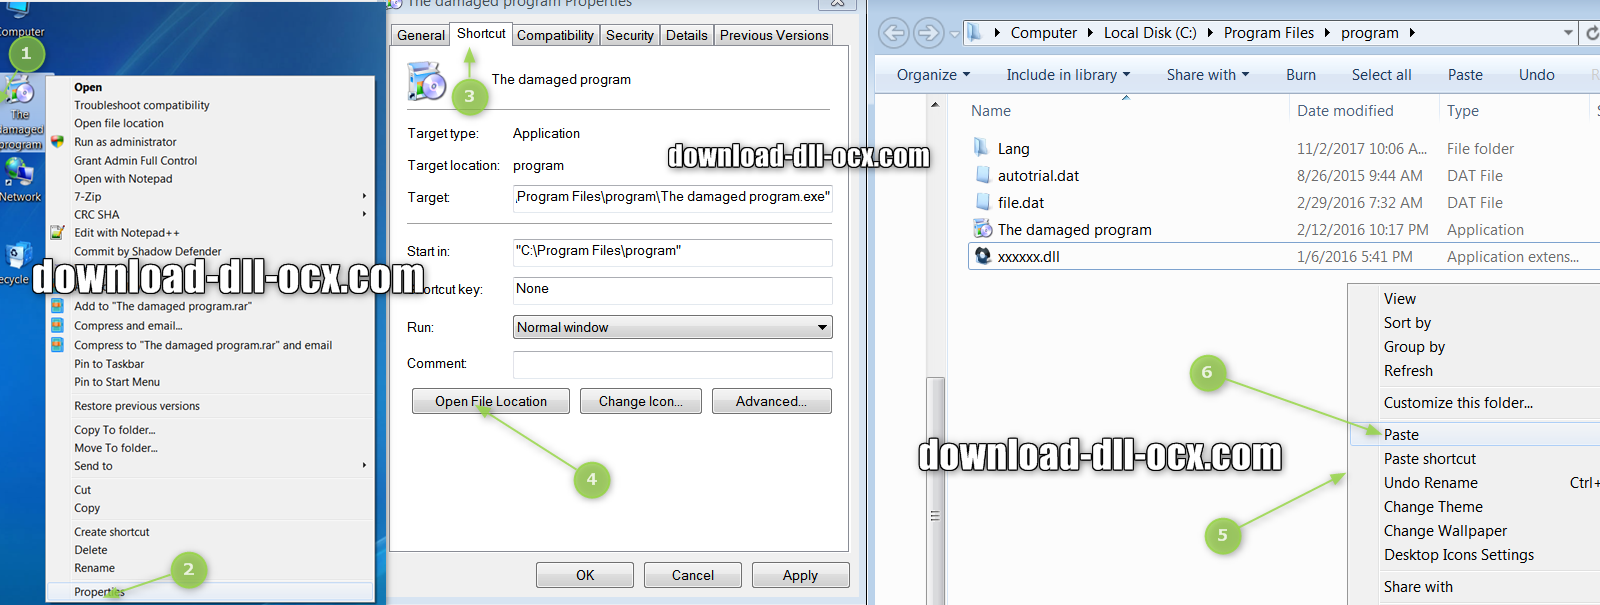 how to install dmBackup.dll file? for fix missing